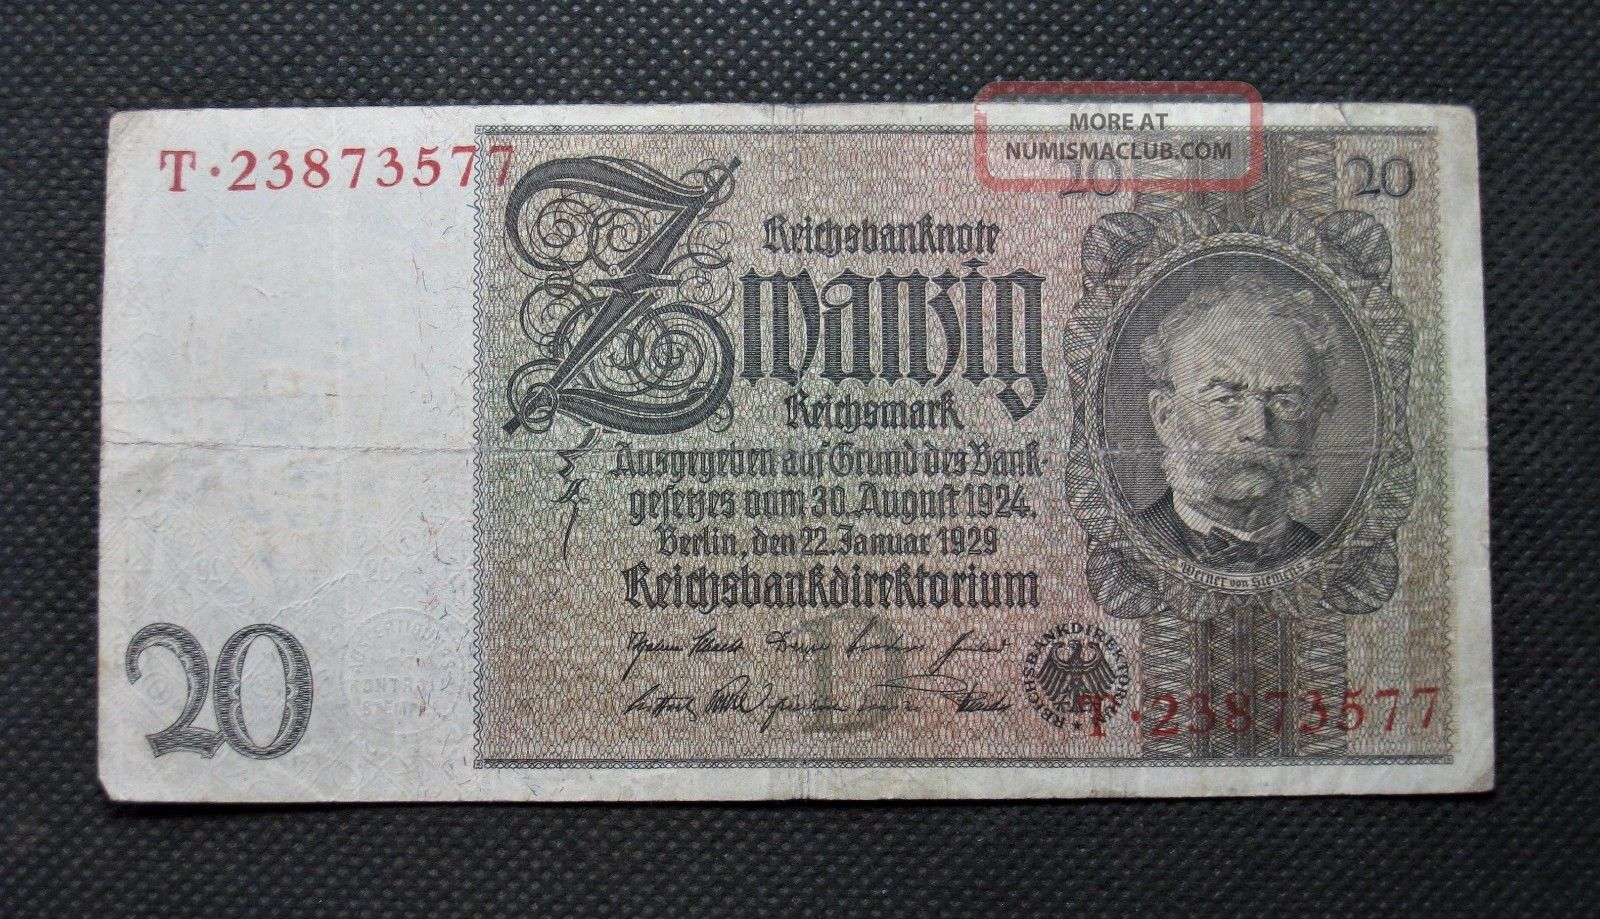 Old Bank Note Of Nazi Germany 20 Reichsmark 1929 Third Reich No.  T23873577 Europe photo